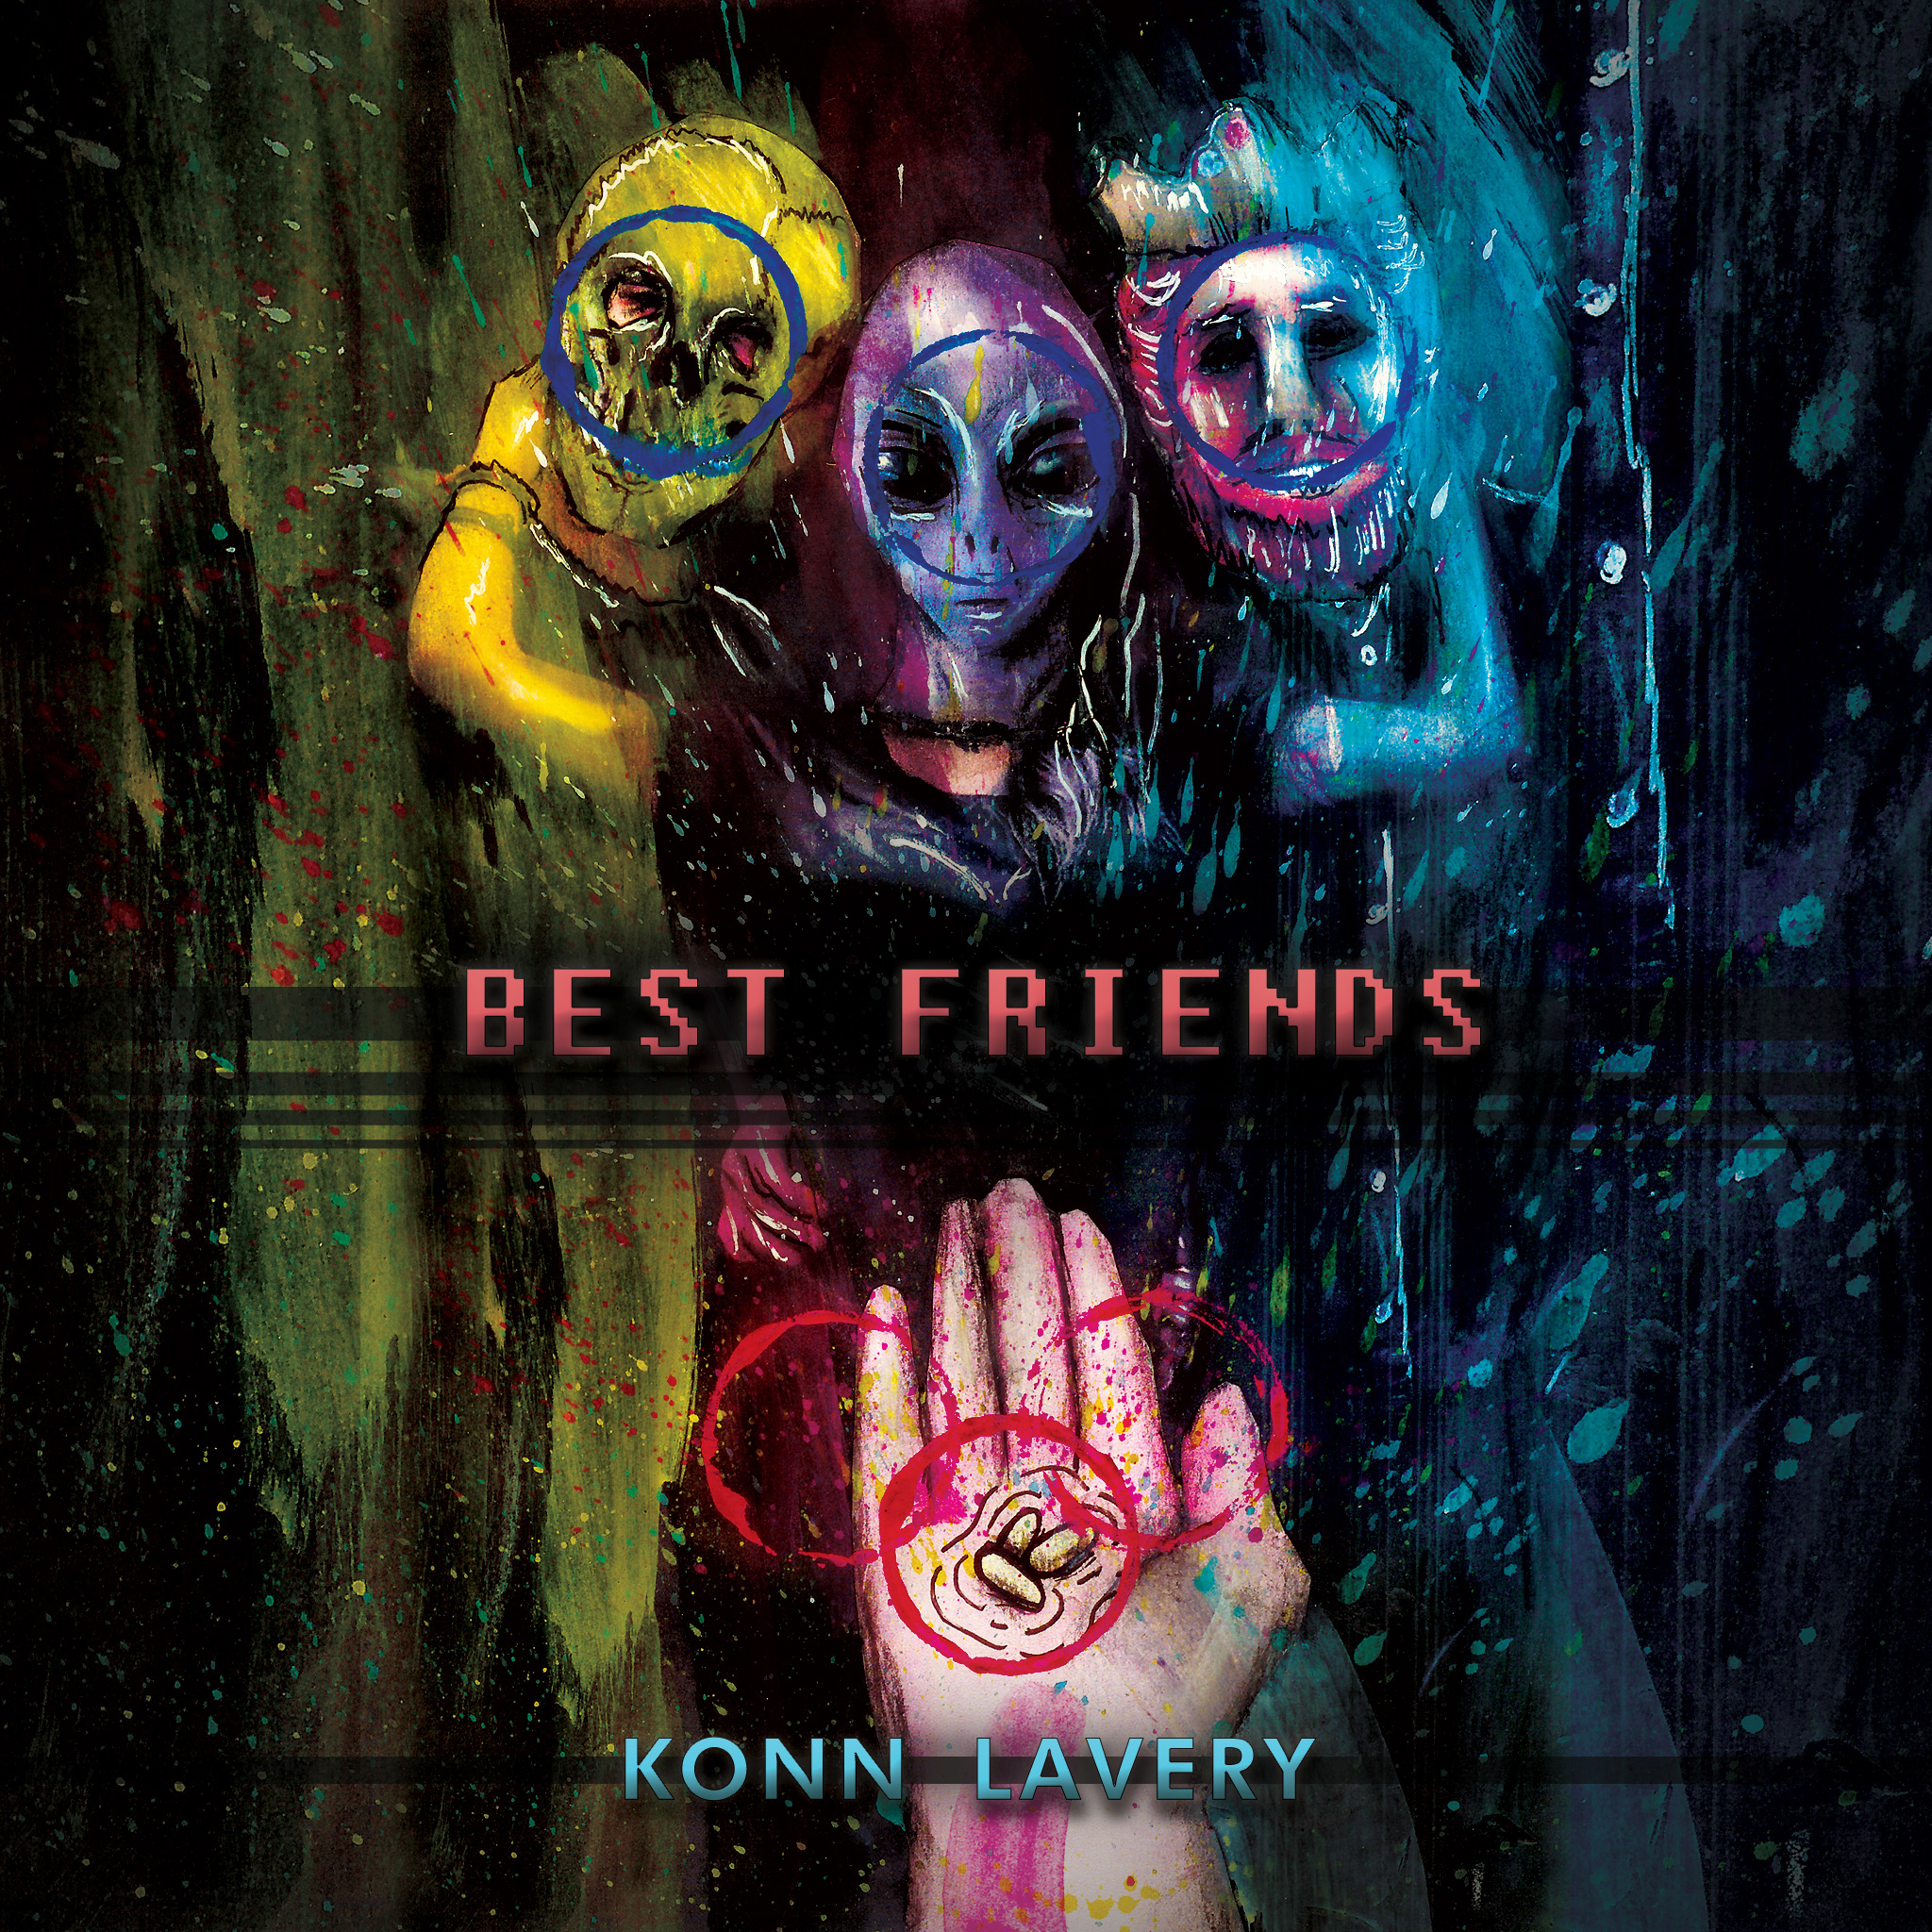 Best Friends by Konn Lavery